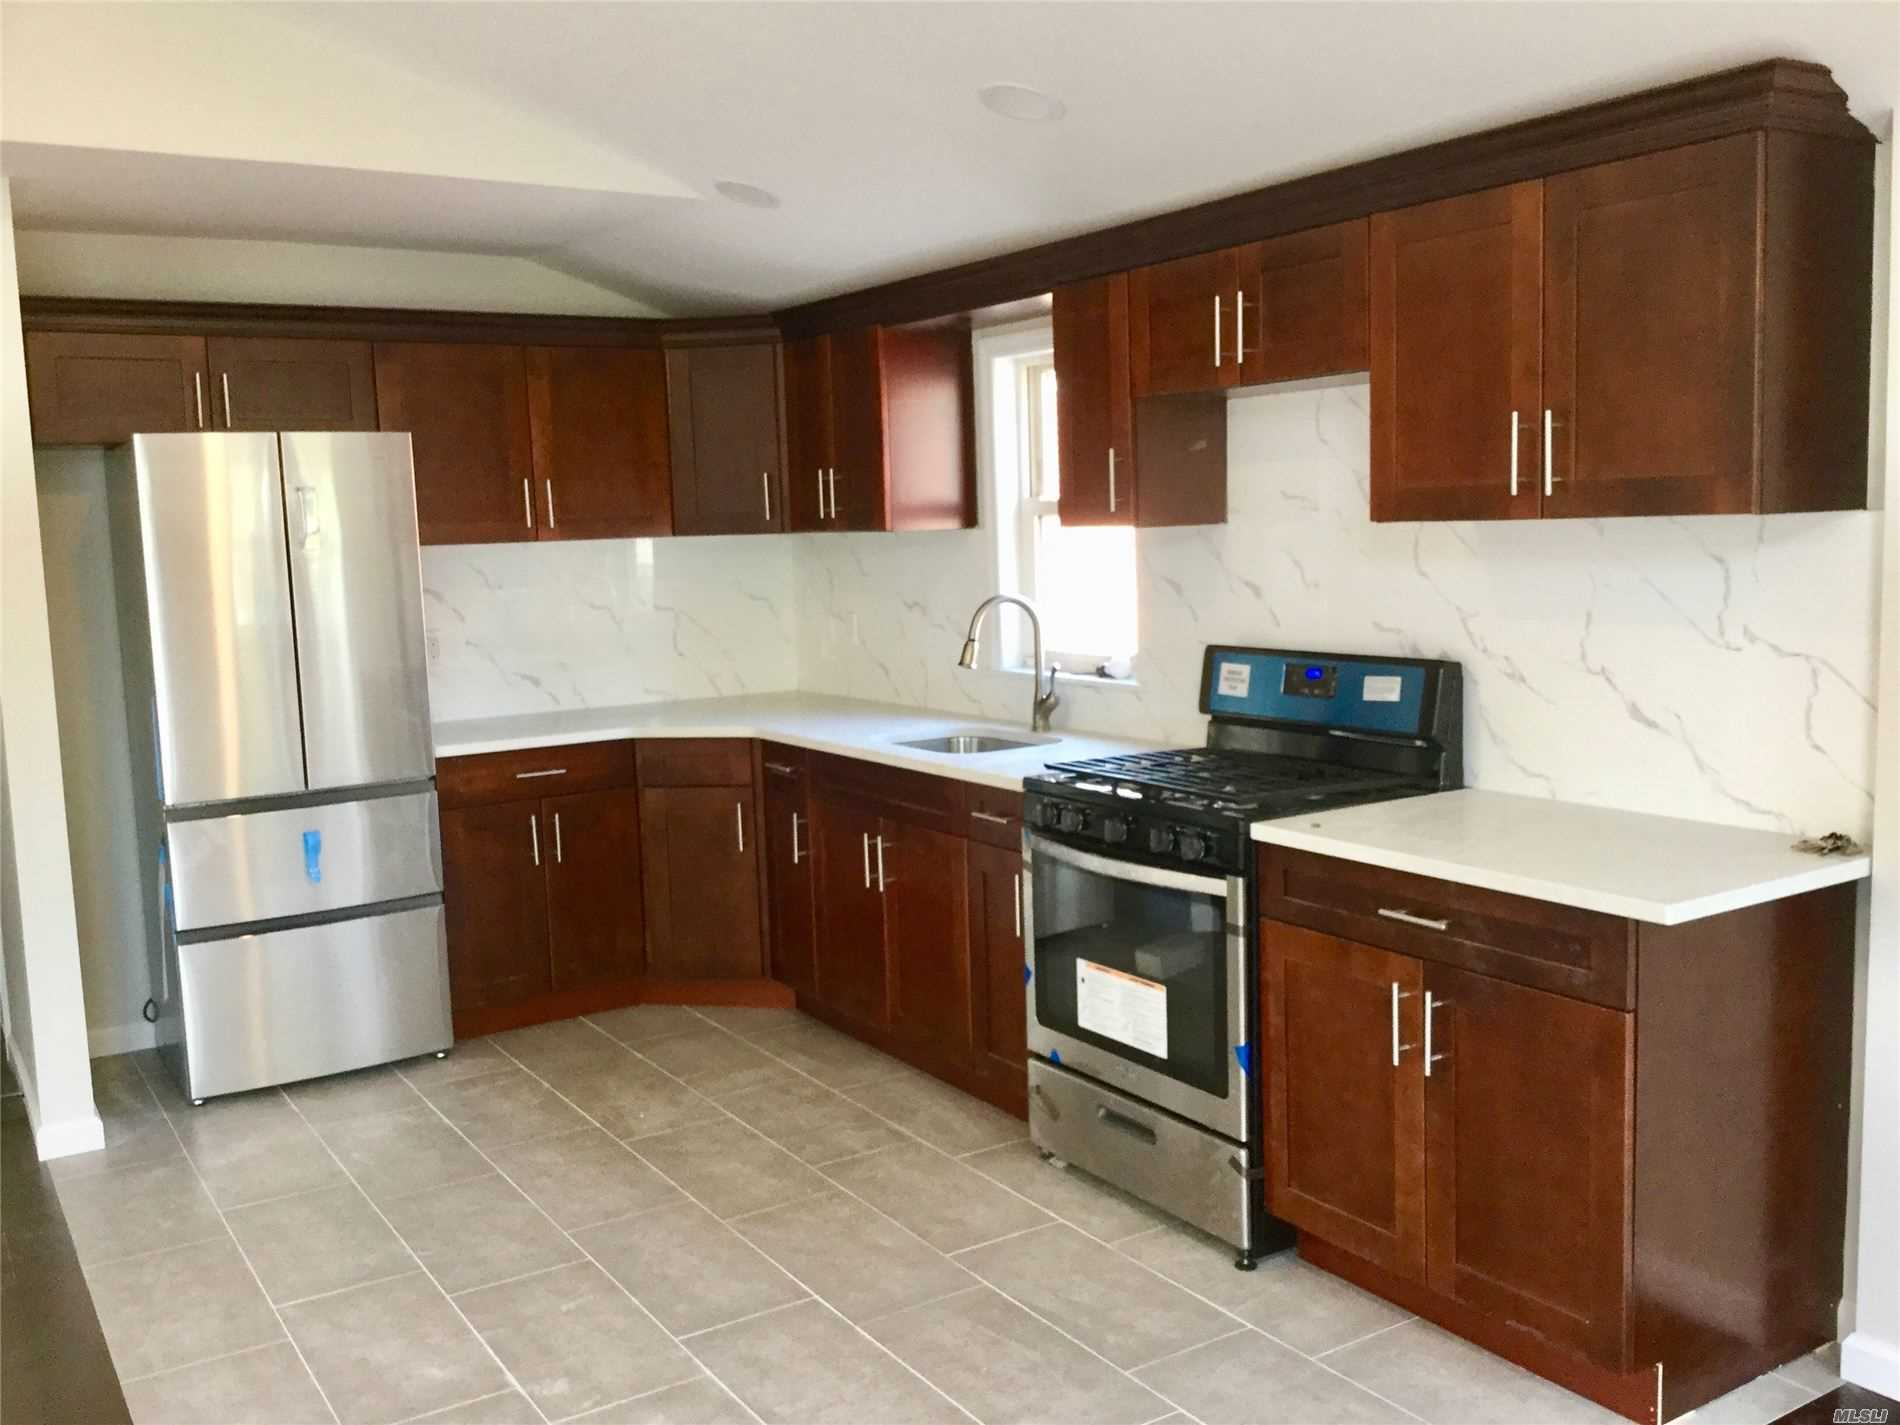 NEWLY RENOVATED 1ST FLOOR DUPLEX WITH BASEMENT, TOTAL 2200 SQ FT. 3 BR 2.5 BA, LR/DR, FULL FINISHED BASEMENT WITH INSIDE & OUTSIDE ACCESS. TENANT PAYS ALL UTILITIES EXCEPT WATER. DRIVEWAY AVAILABLE AT EXTRA $$$. ZONED FOR PS 162, JHS74, FRANCIS LEWIS H.S. CLOSE TO KISSENA CORRIDOR PARK & I-495 EXPRESSWAY.